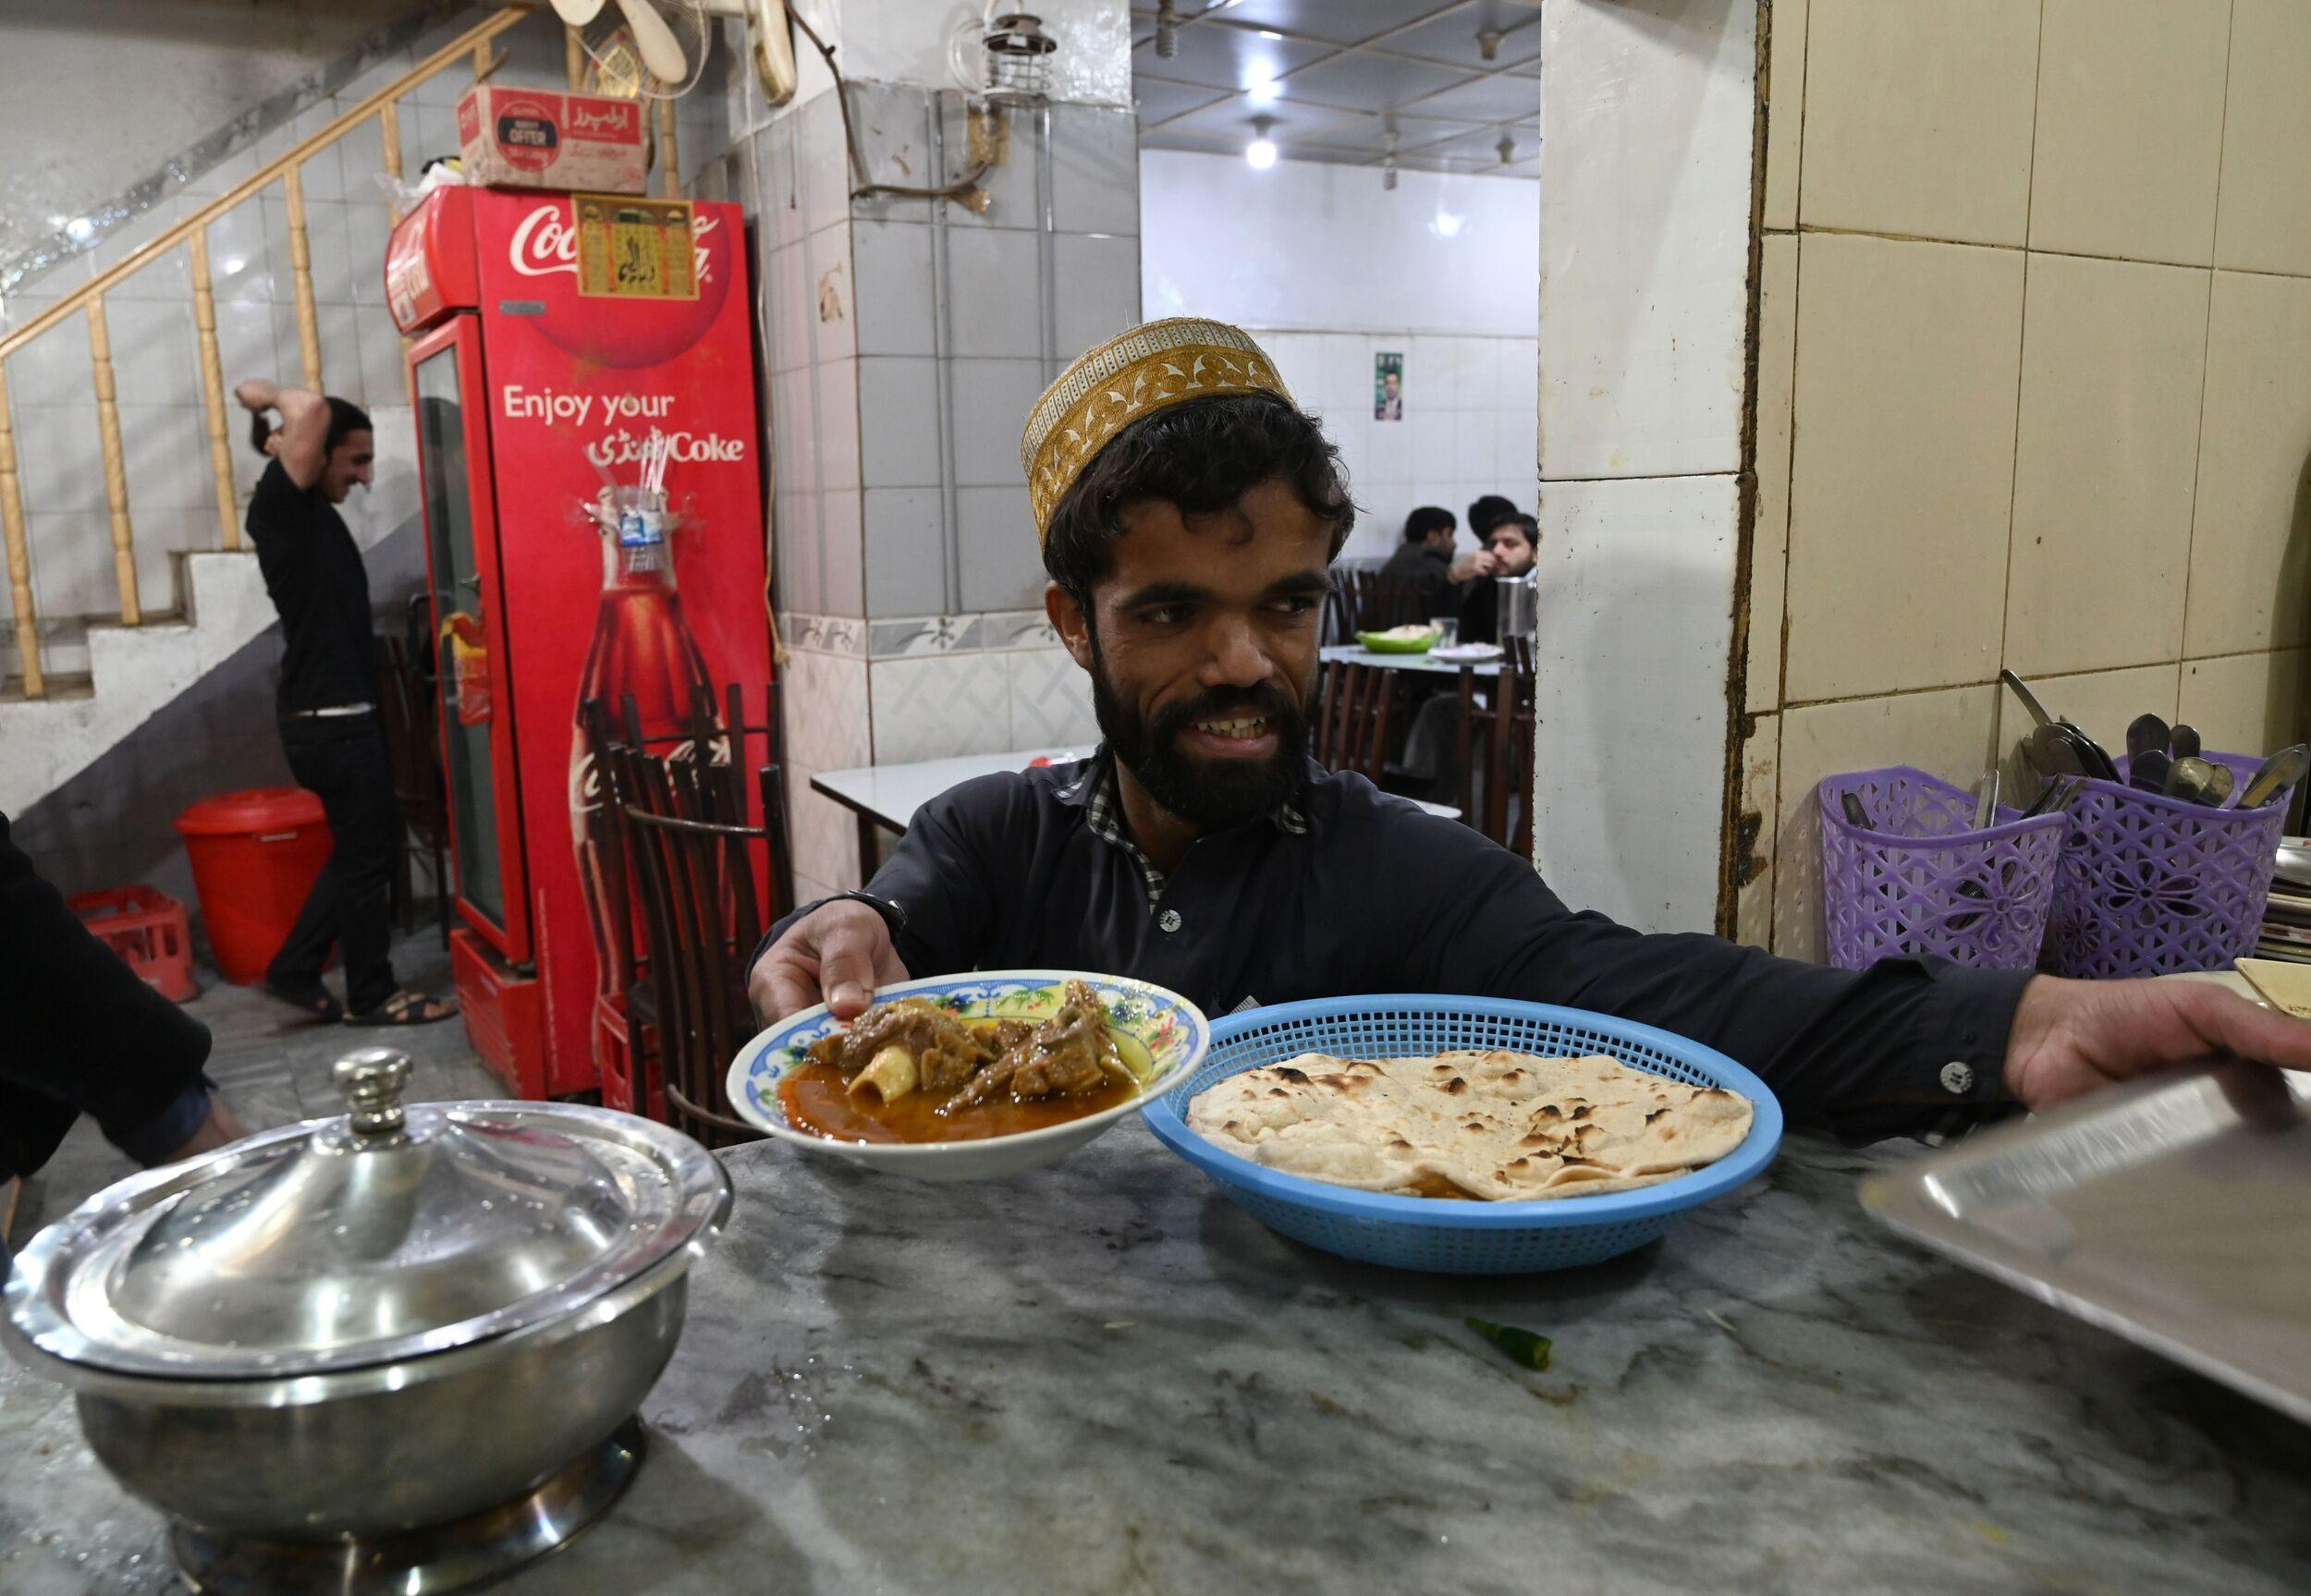 In this picture taken on February 22, 2019, Pakistani waiter Rozi Khan, 25, who resembles US actor Peter Dinklage, prepares to serve food to customers at Dilbar Hotel in Rawalpindi. - Rozi Khan had never heard of the Game of Thrones -- or its hugely popular character Tyrion Lannister -- until his striking resemblance to the dwarf anti-hero got heads turning at home. (Photo by AAMIR QURESHI / AFP) / To go with PAKISTAN-LIFESTYLE-TELEVISION-ENTERTAINMENT        (Photo credit should read AAMIR QURESHI/AFP/Getty Images)